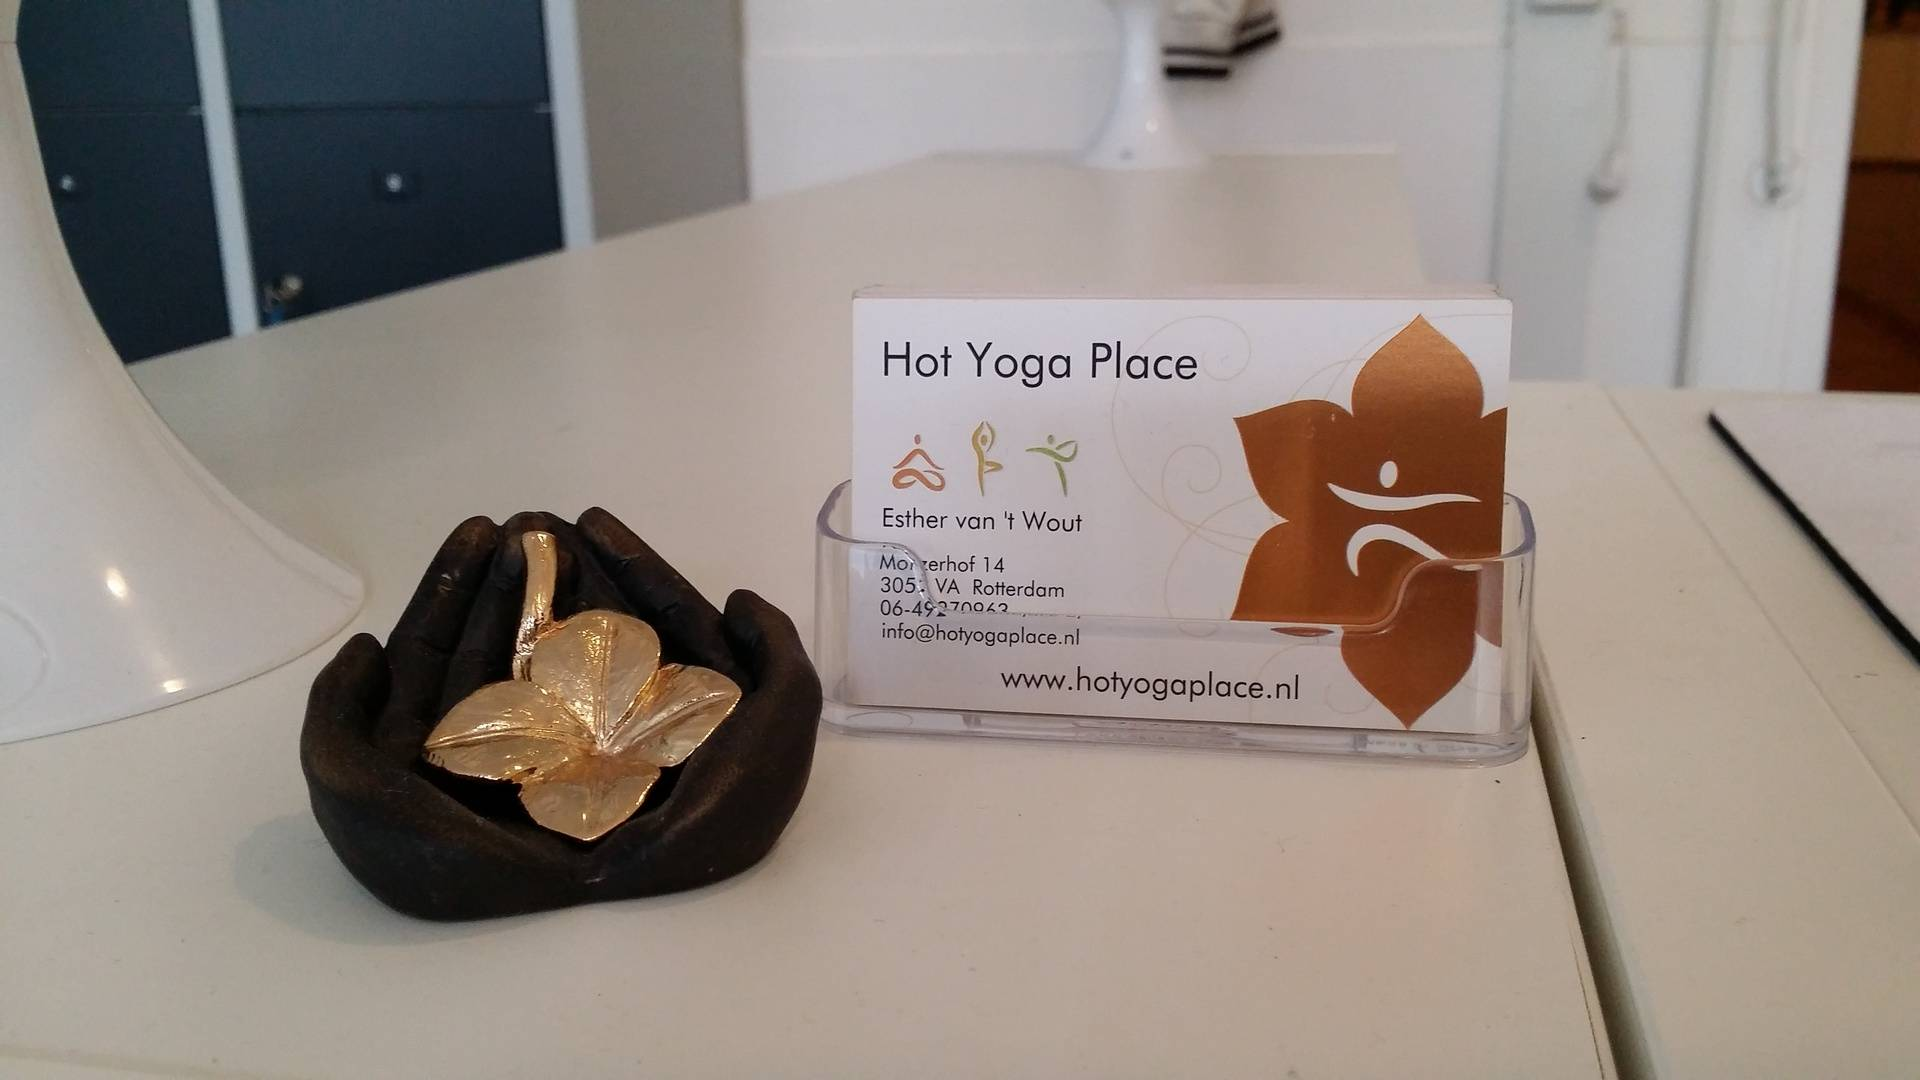 Hot Yoga Place, the Place to be!